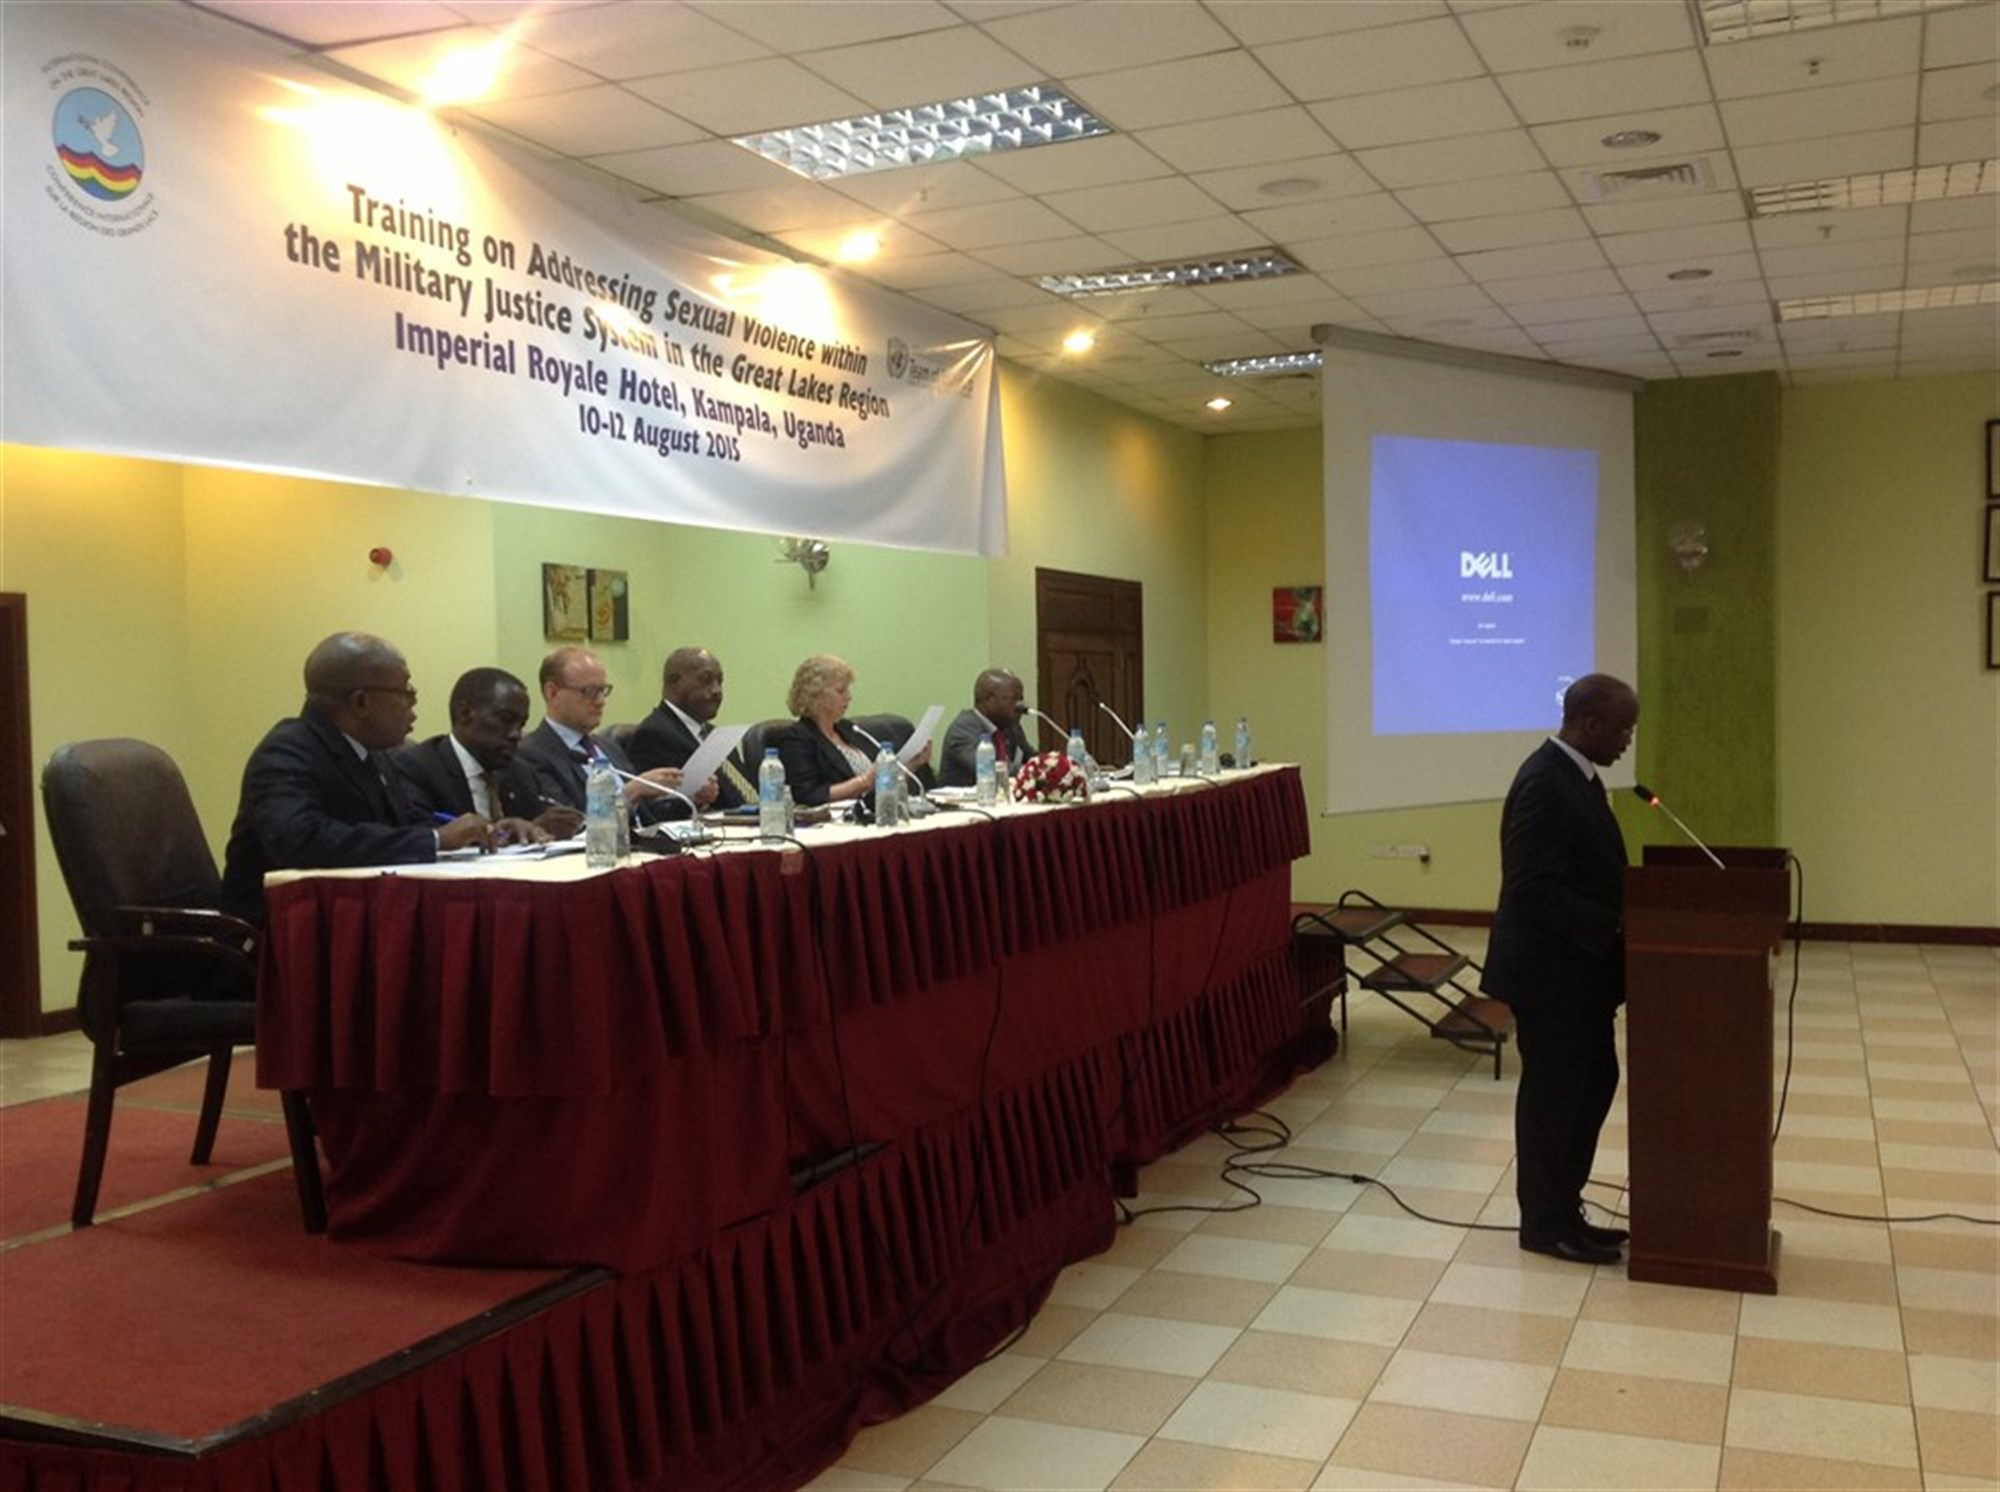 A speaker gives a presentation at the International Conference on the Great Lakes Region Regional Training Facility In Kampala, Uganda. The training addressed sexual violence within the military justice system and was held Aug. 10-12, 2015. (Courtesy photo)